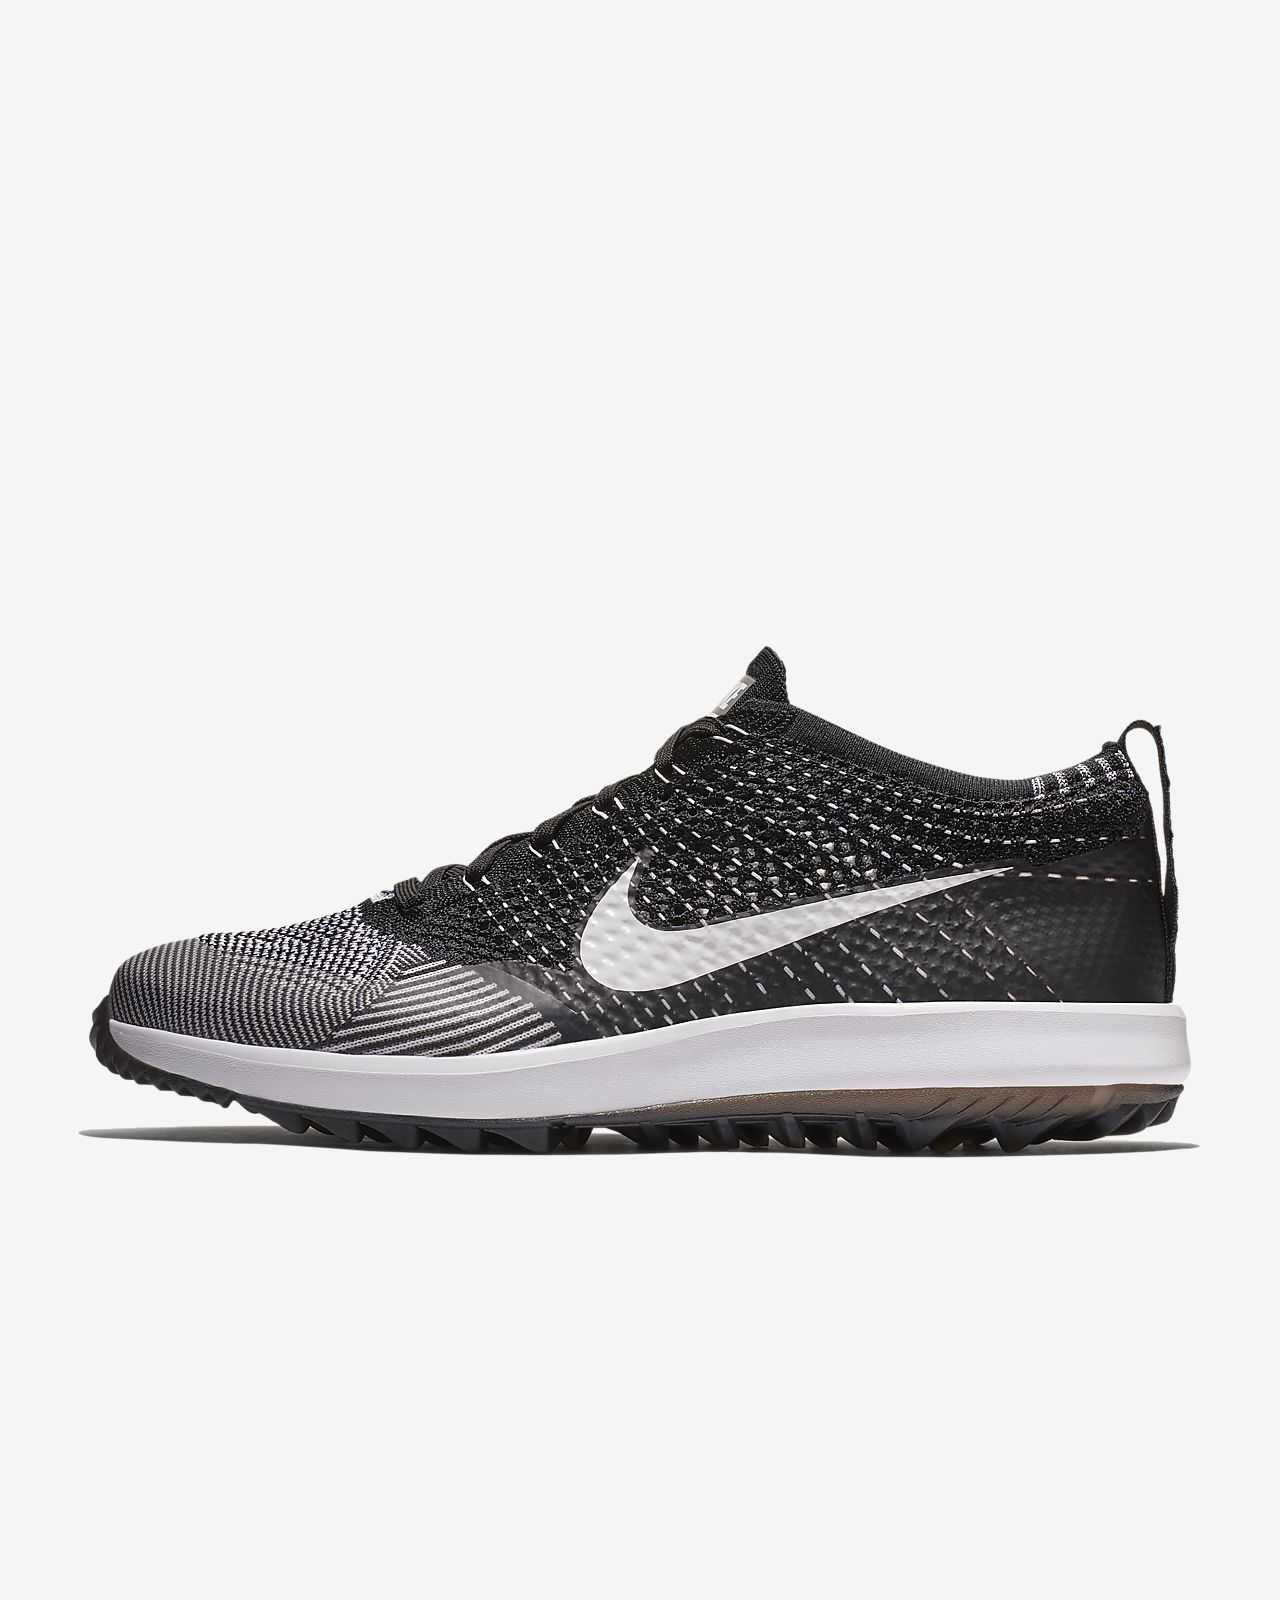 timeless design 071e1 0b3f0 Men s Golf Shoe. Nike Flyknit Racer G